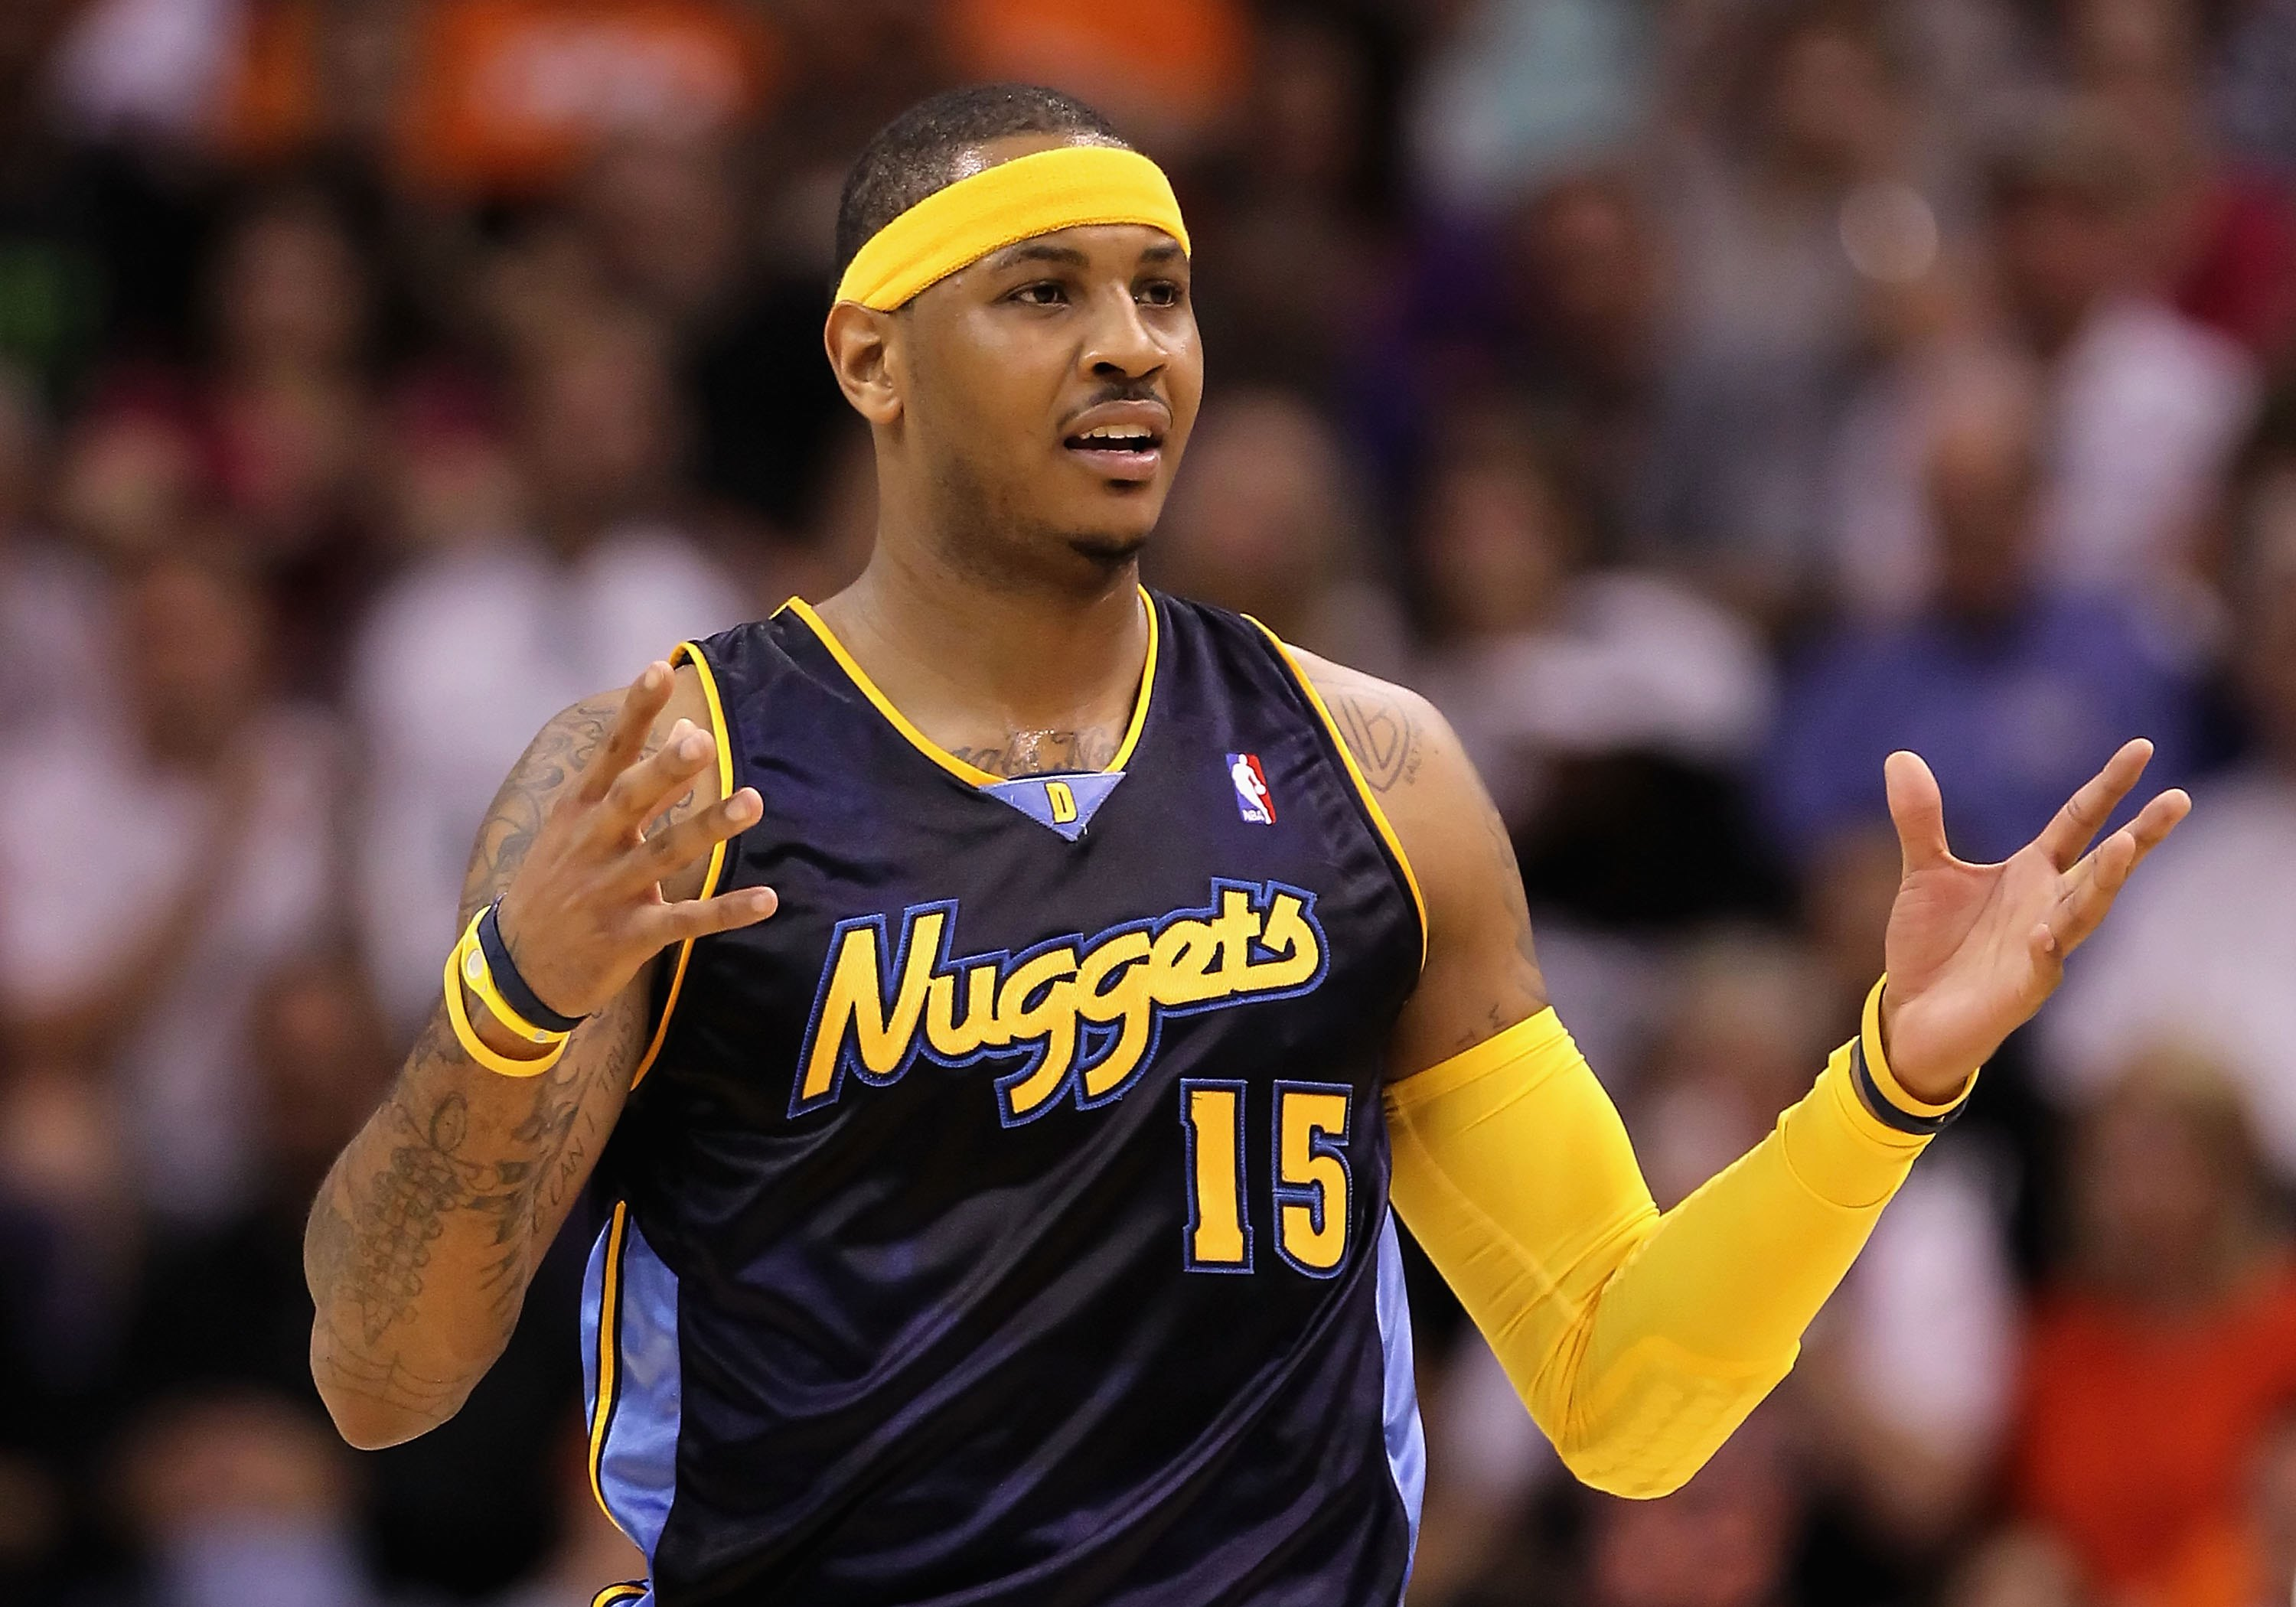 480d50abb48 PHOENIX - APRIL 13  Carmelo Anthony  15 of the Denver Nuggets reacts during  the